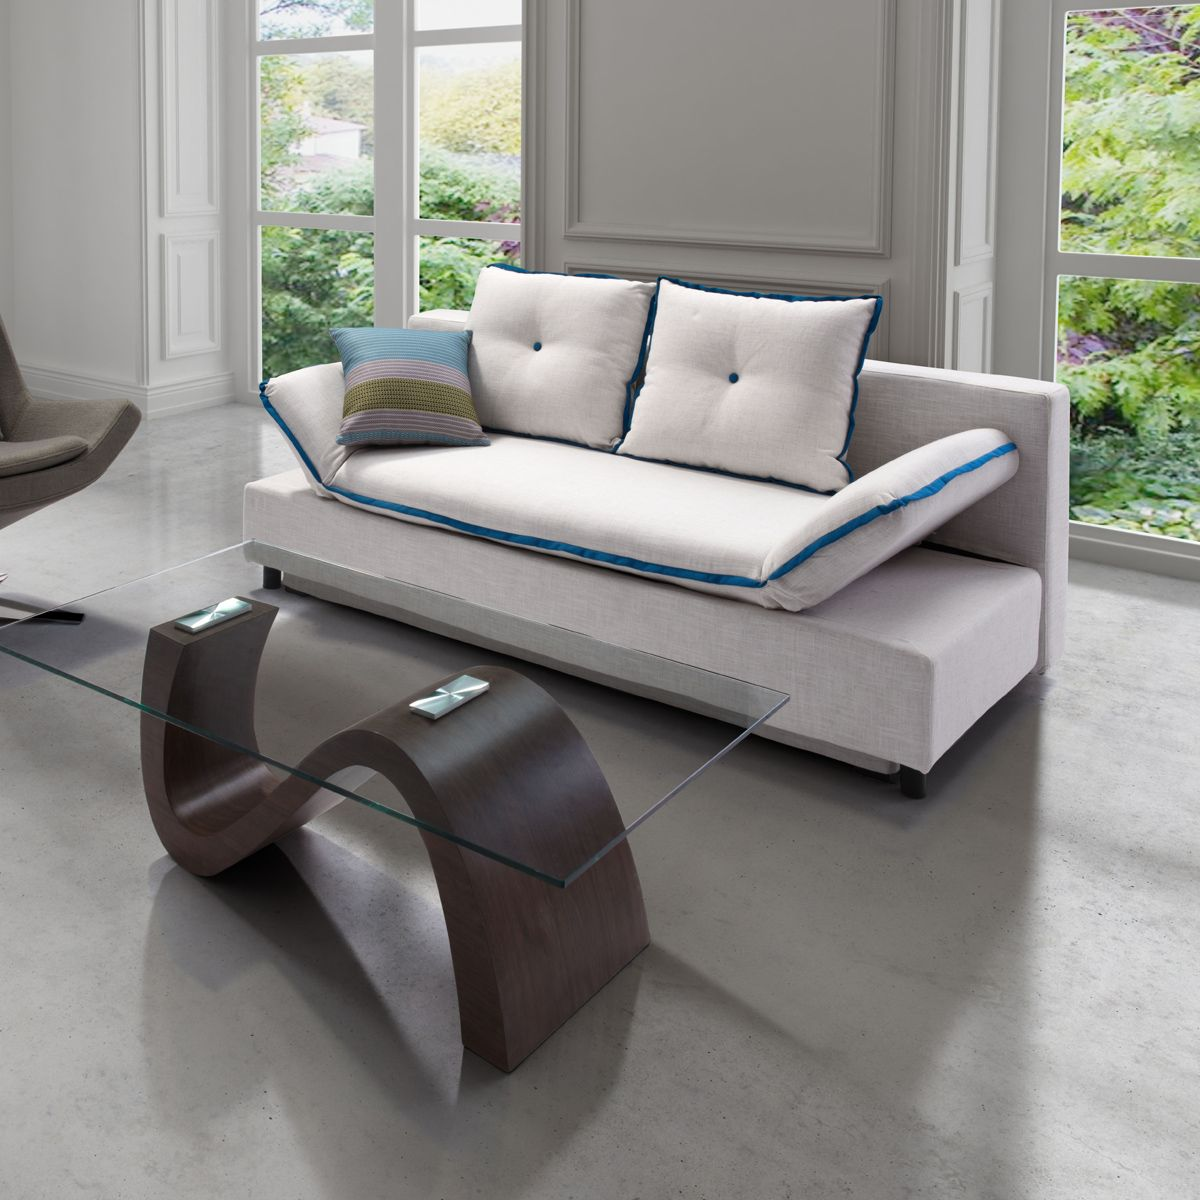 Loveseat sleeper sofa a perfect functional yet